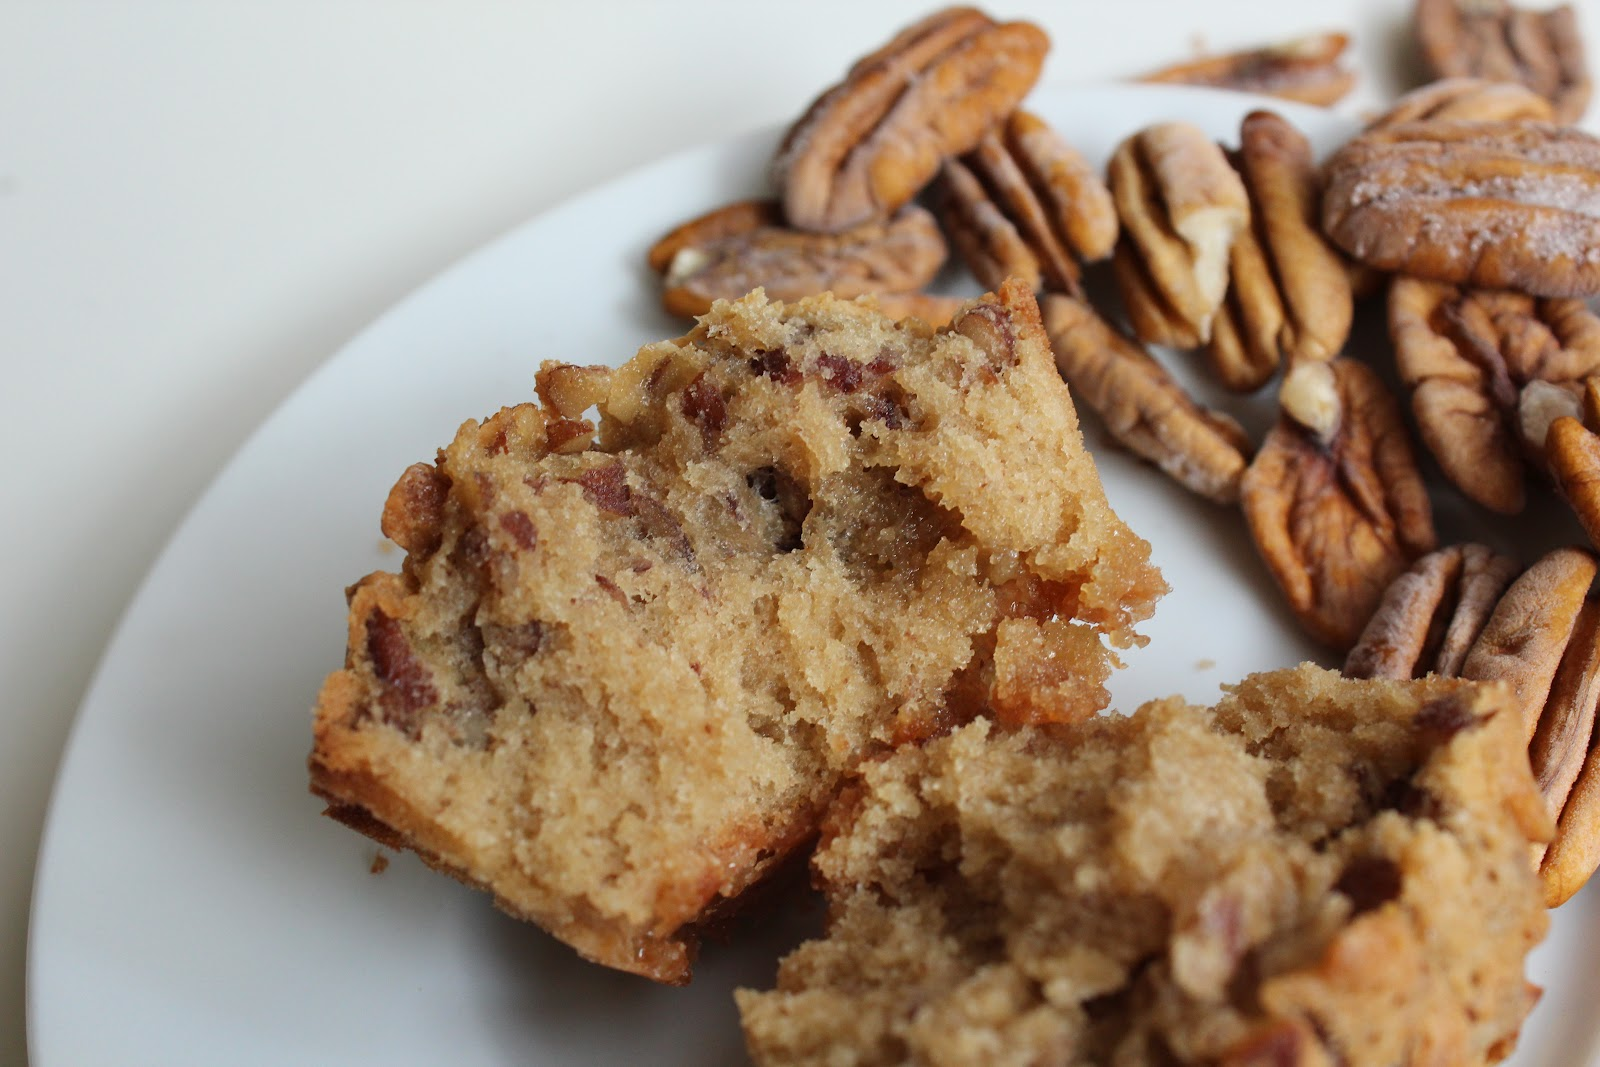 Nuts about food: Pecan Pie muffins - please read!